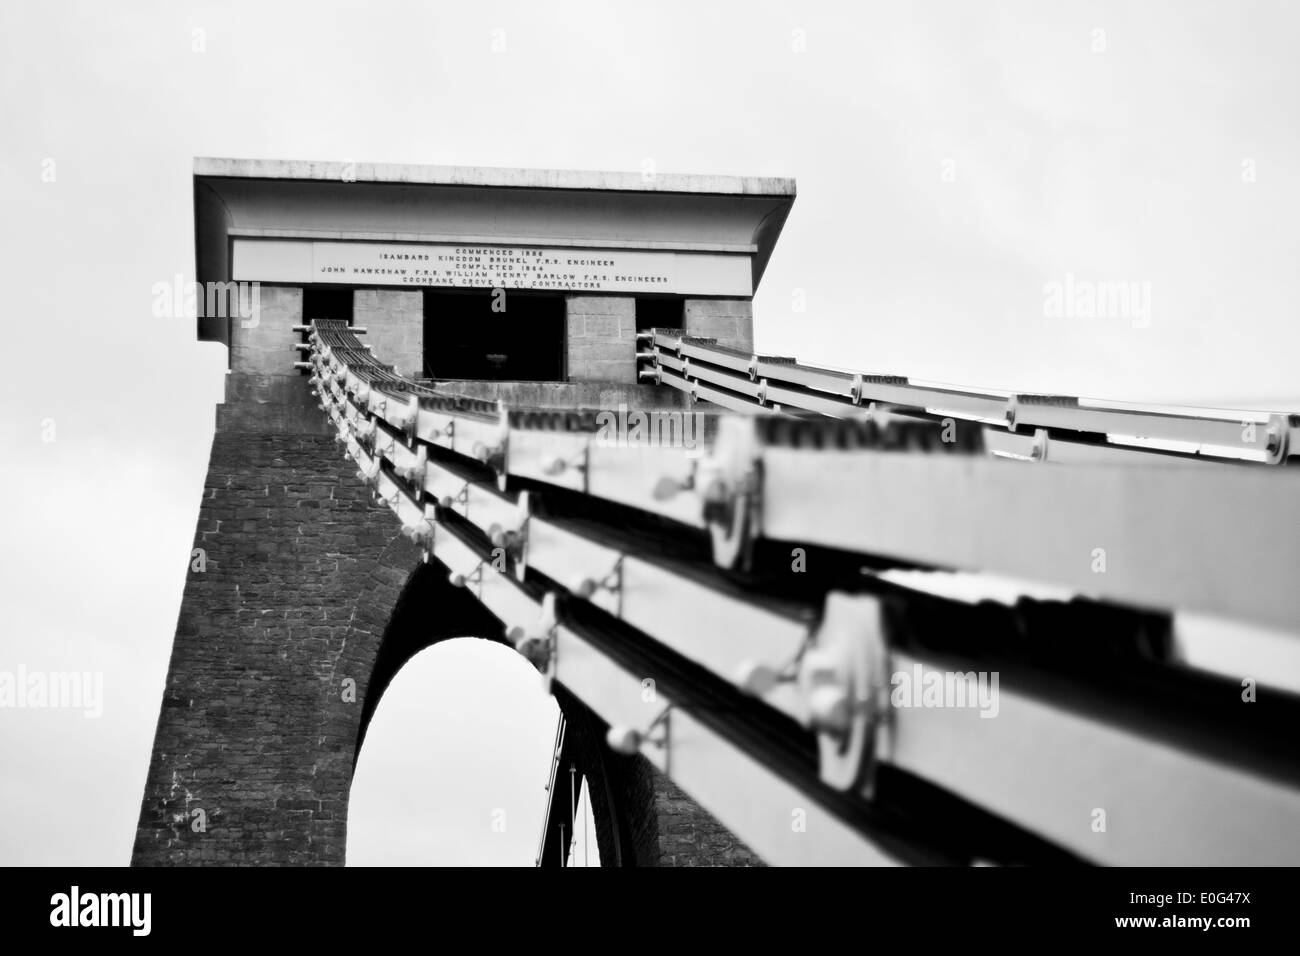 A close up view of the support system of the Clifton Suspension Bridge - Stock Image